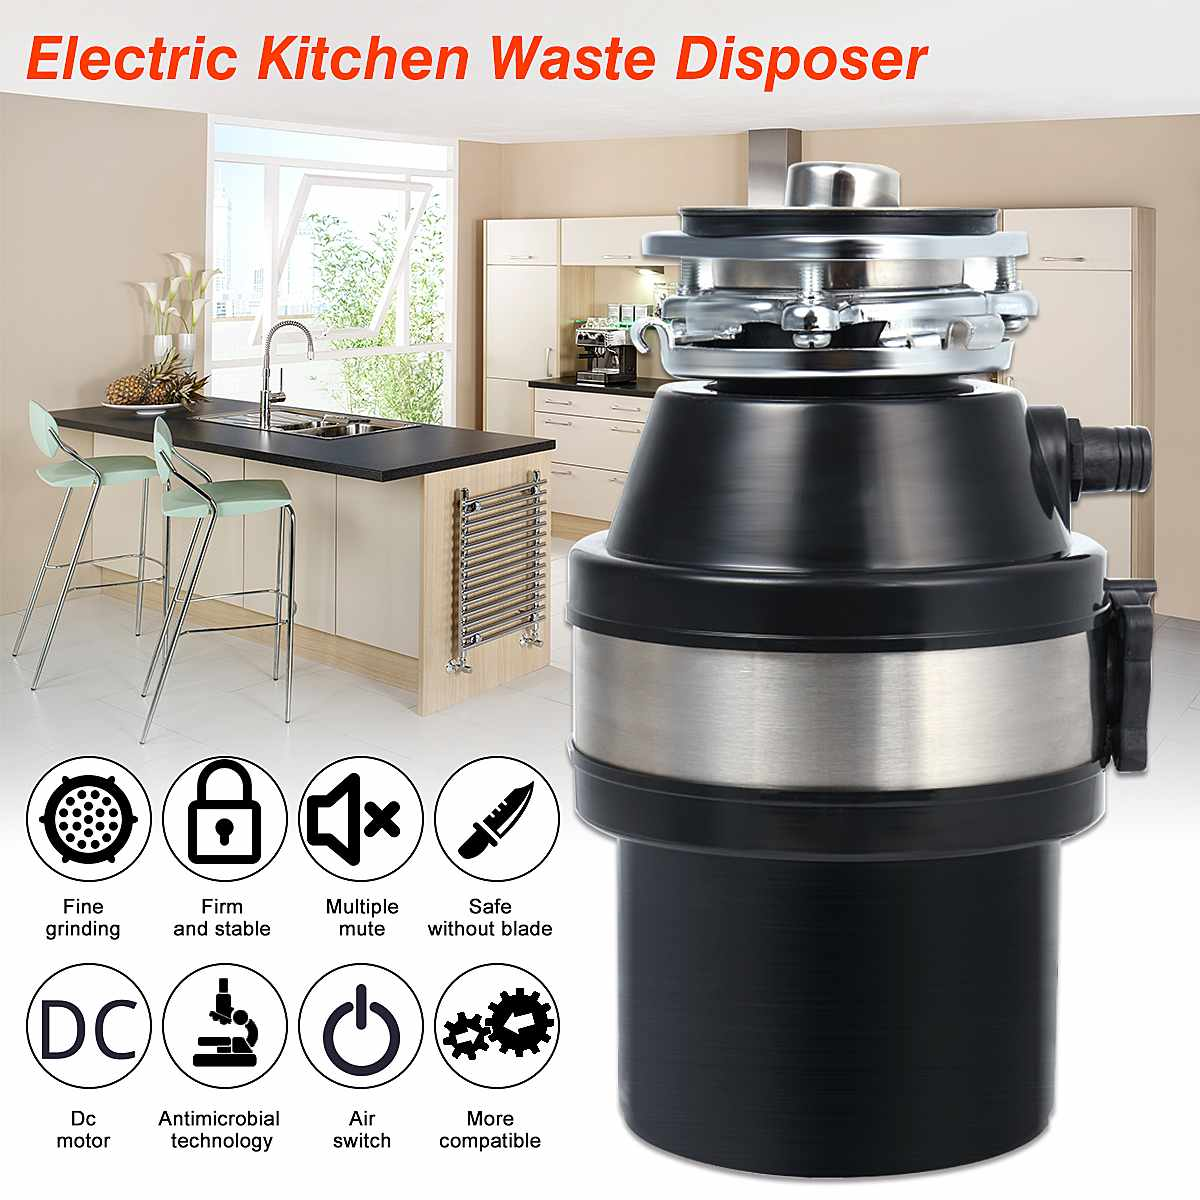 370W 220V Waste Disposer Food Garbage Disposal Garbage Disposal With Power Cord US Plug Stainless Steel Grinder Air Switch